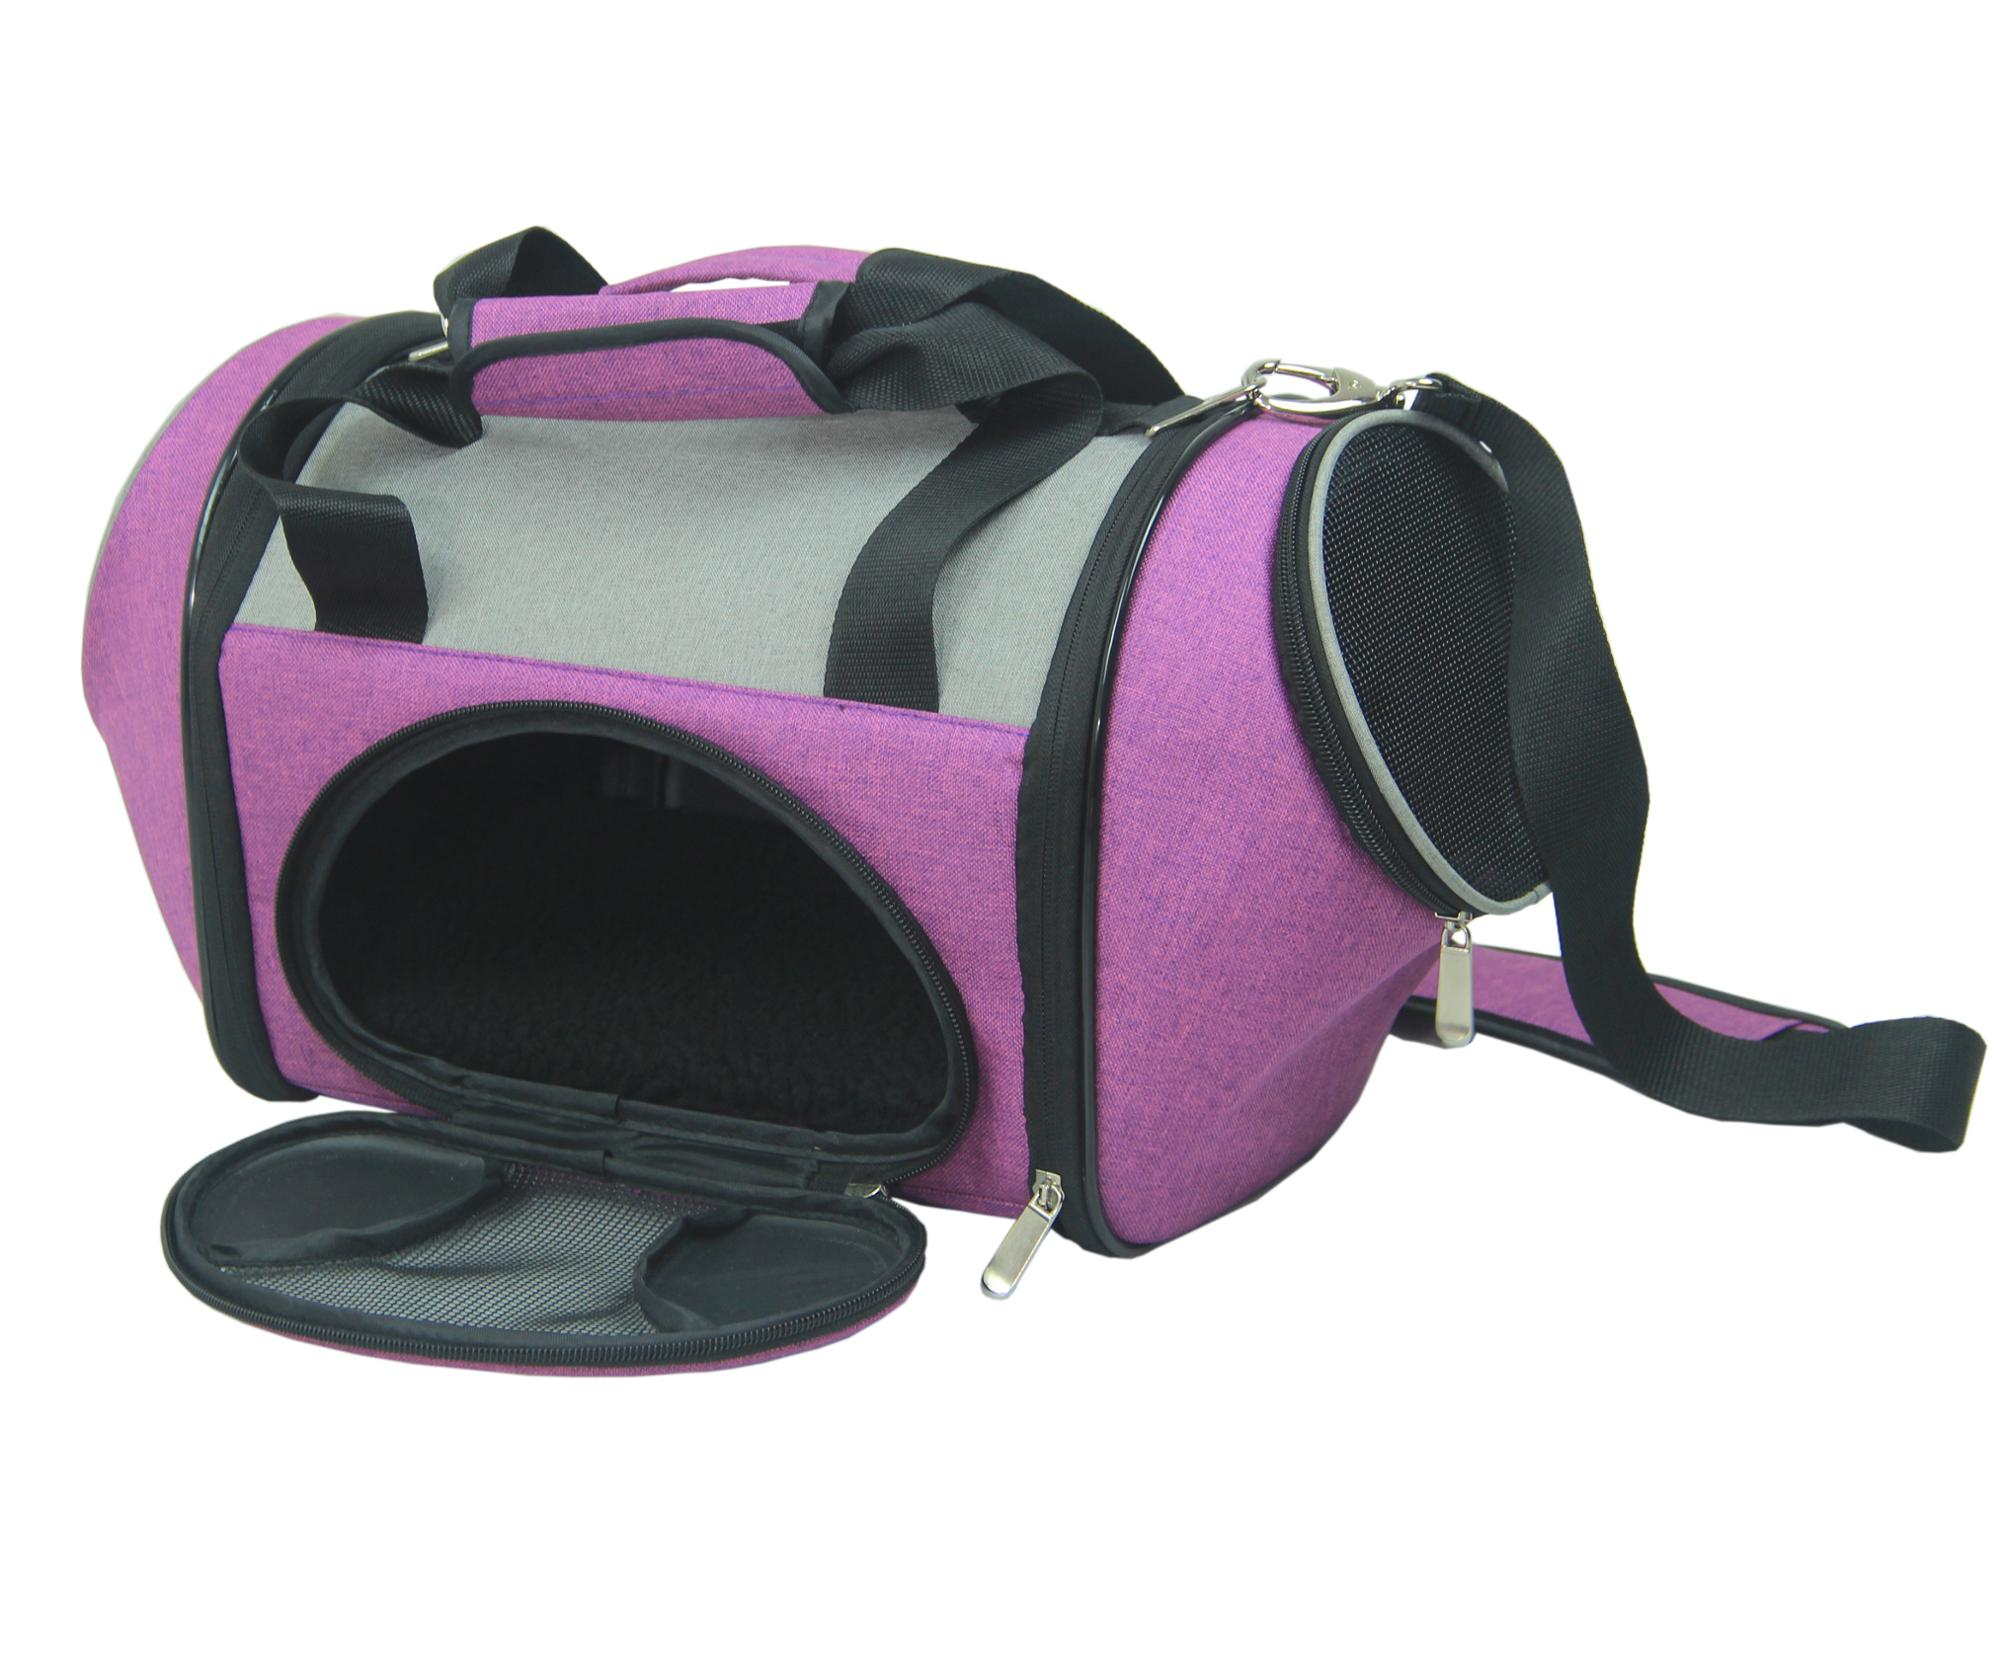 Portable iata Pet Travel Carrier ,Sofe-Side Pet Carrier parts for samll animal